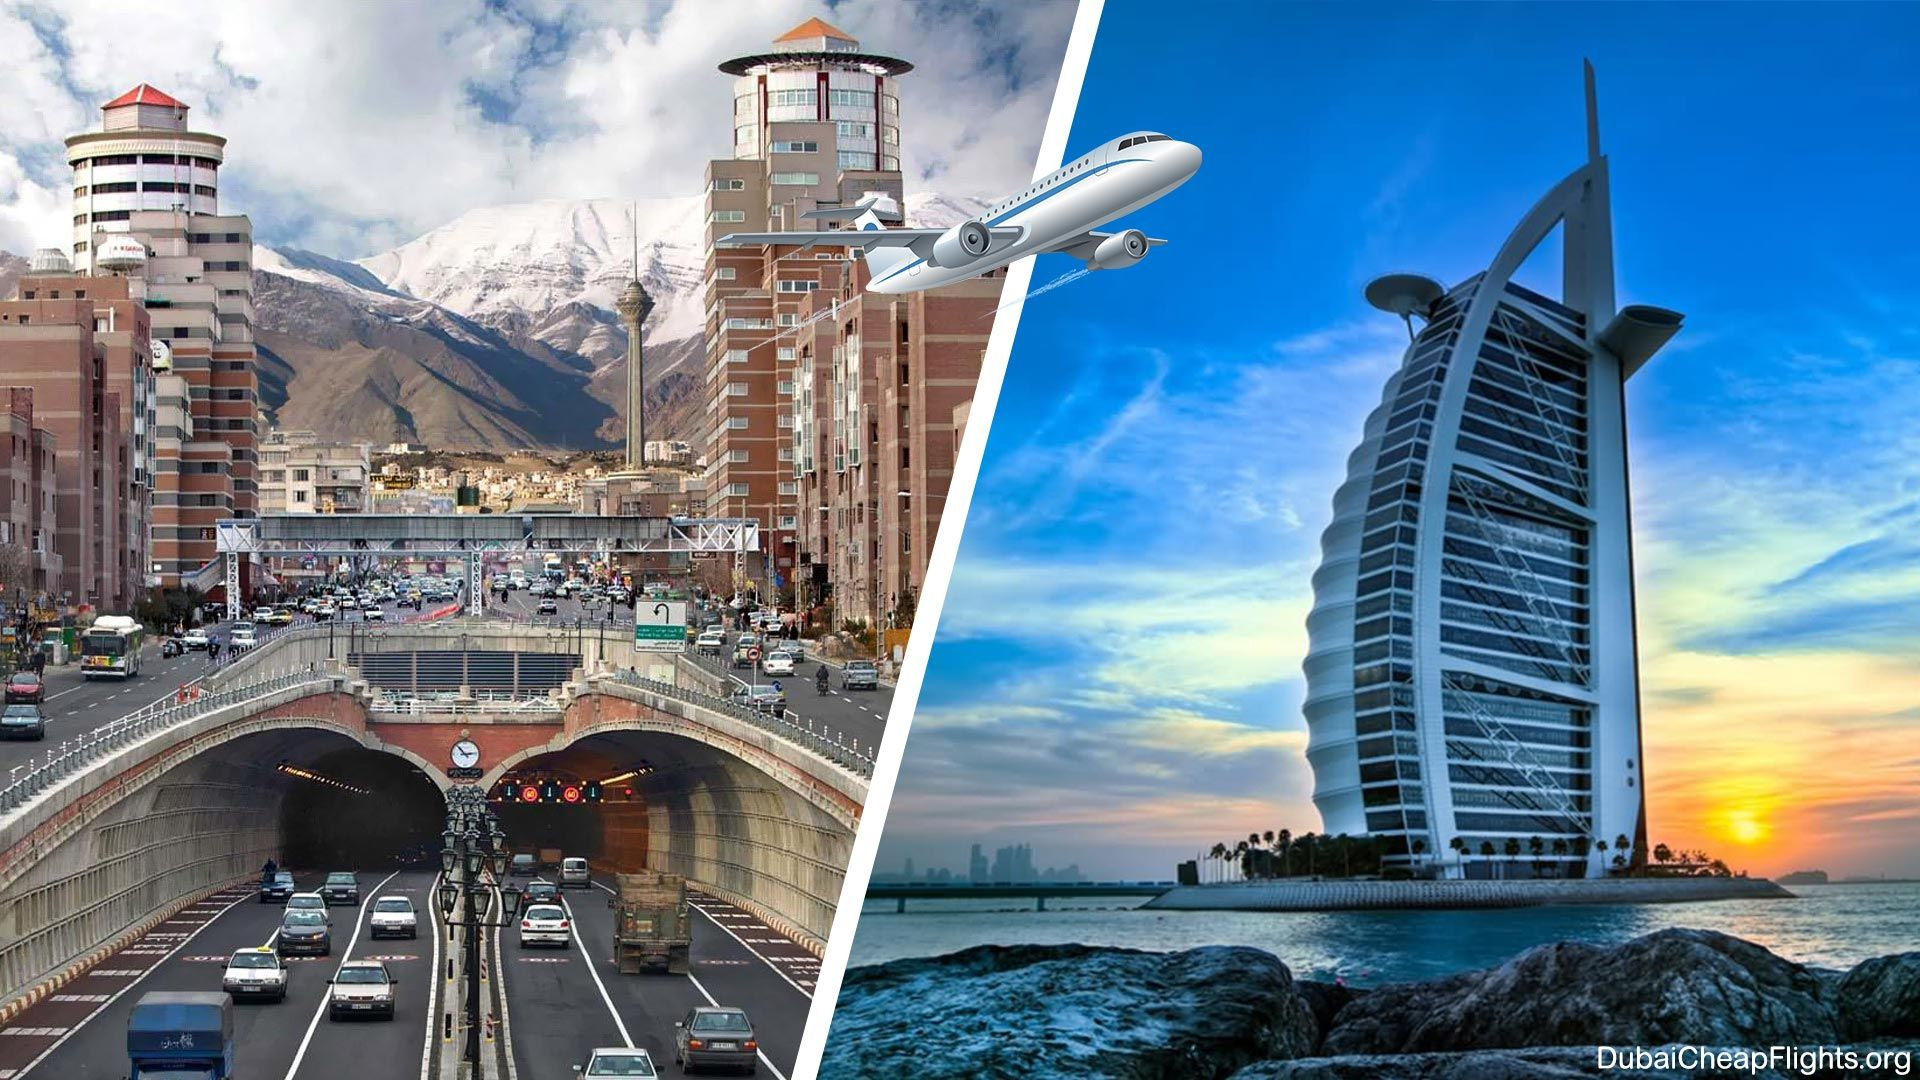 Flights From Tehran To Dubai With Great Value Prices On Tickets And Hotels Search Compare Book Now